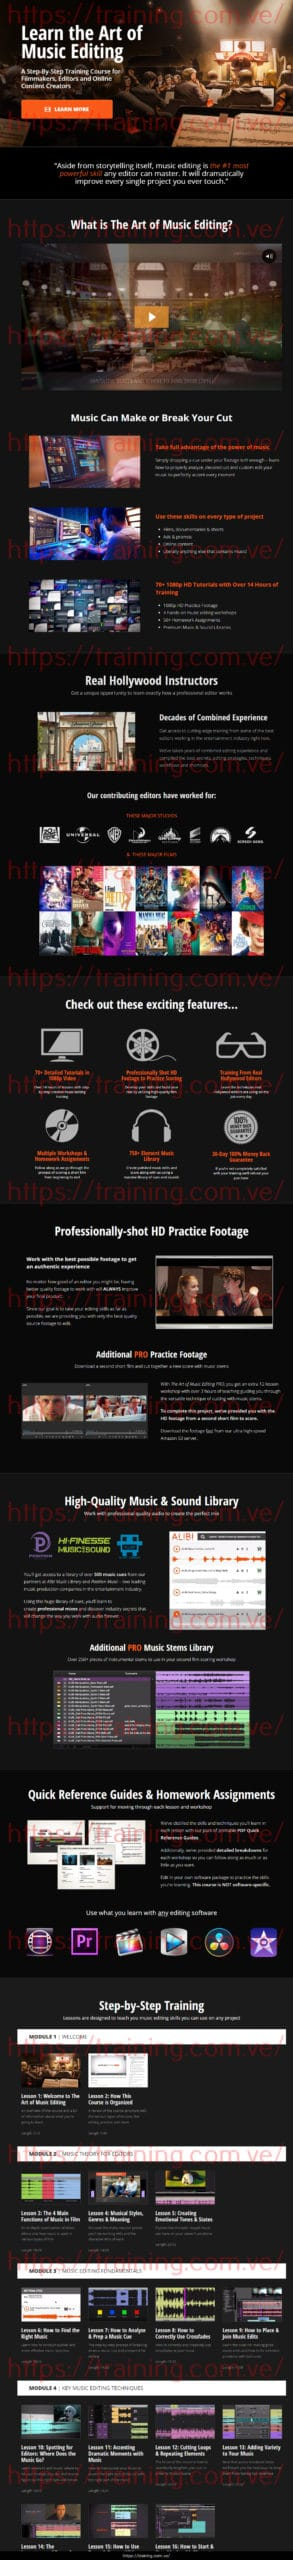 The Art Of Music Editing by Film Editing Pro Buy